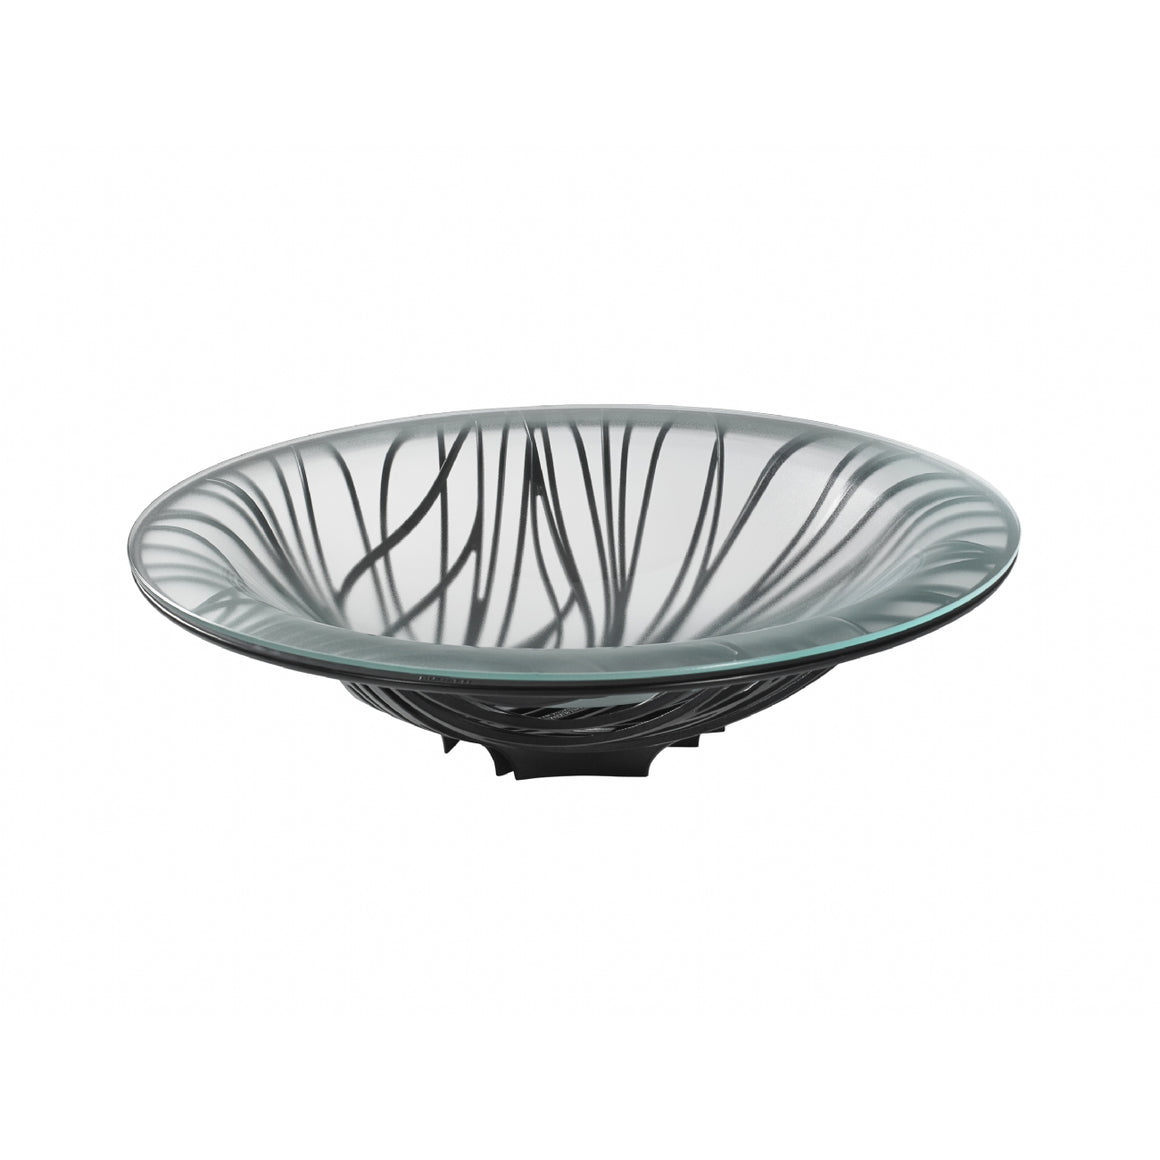 Bugatti - Flora Fruit Bowl With Glass Coupe, Black